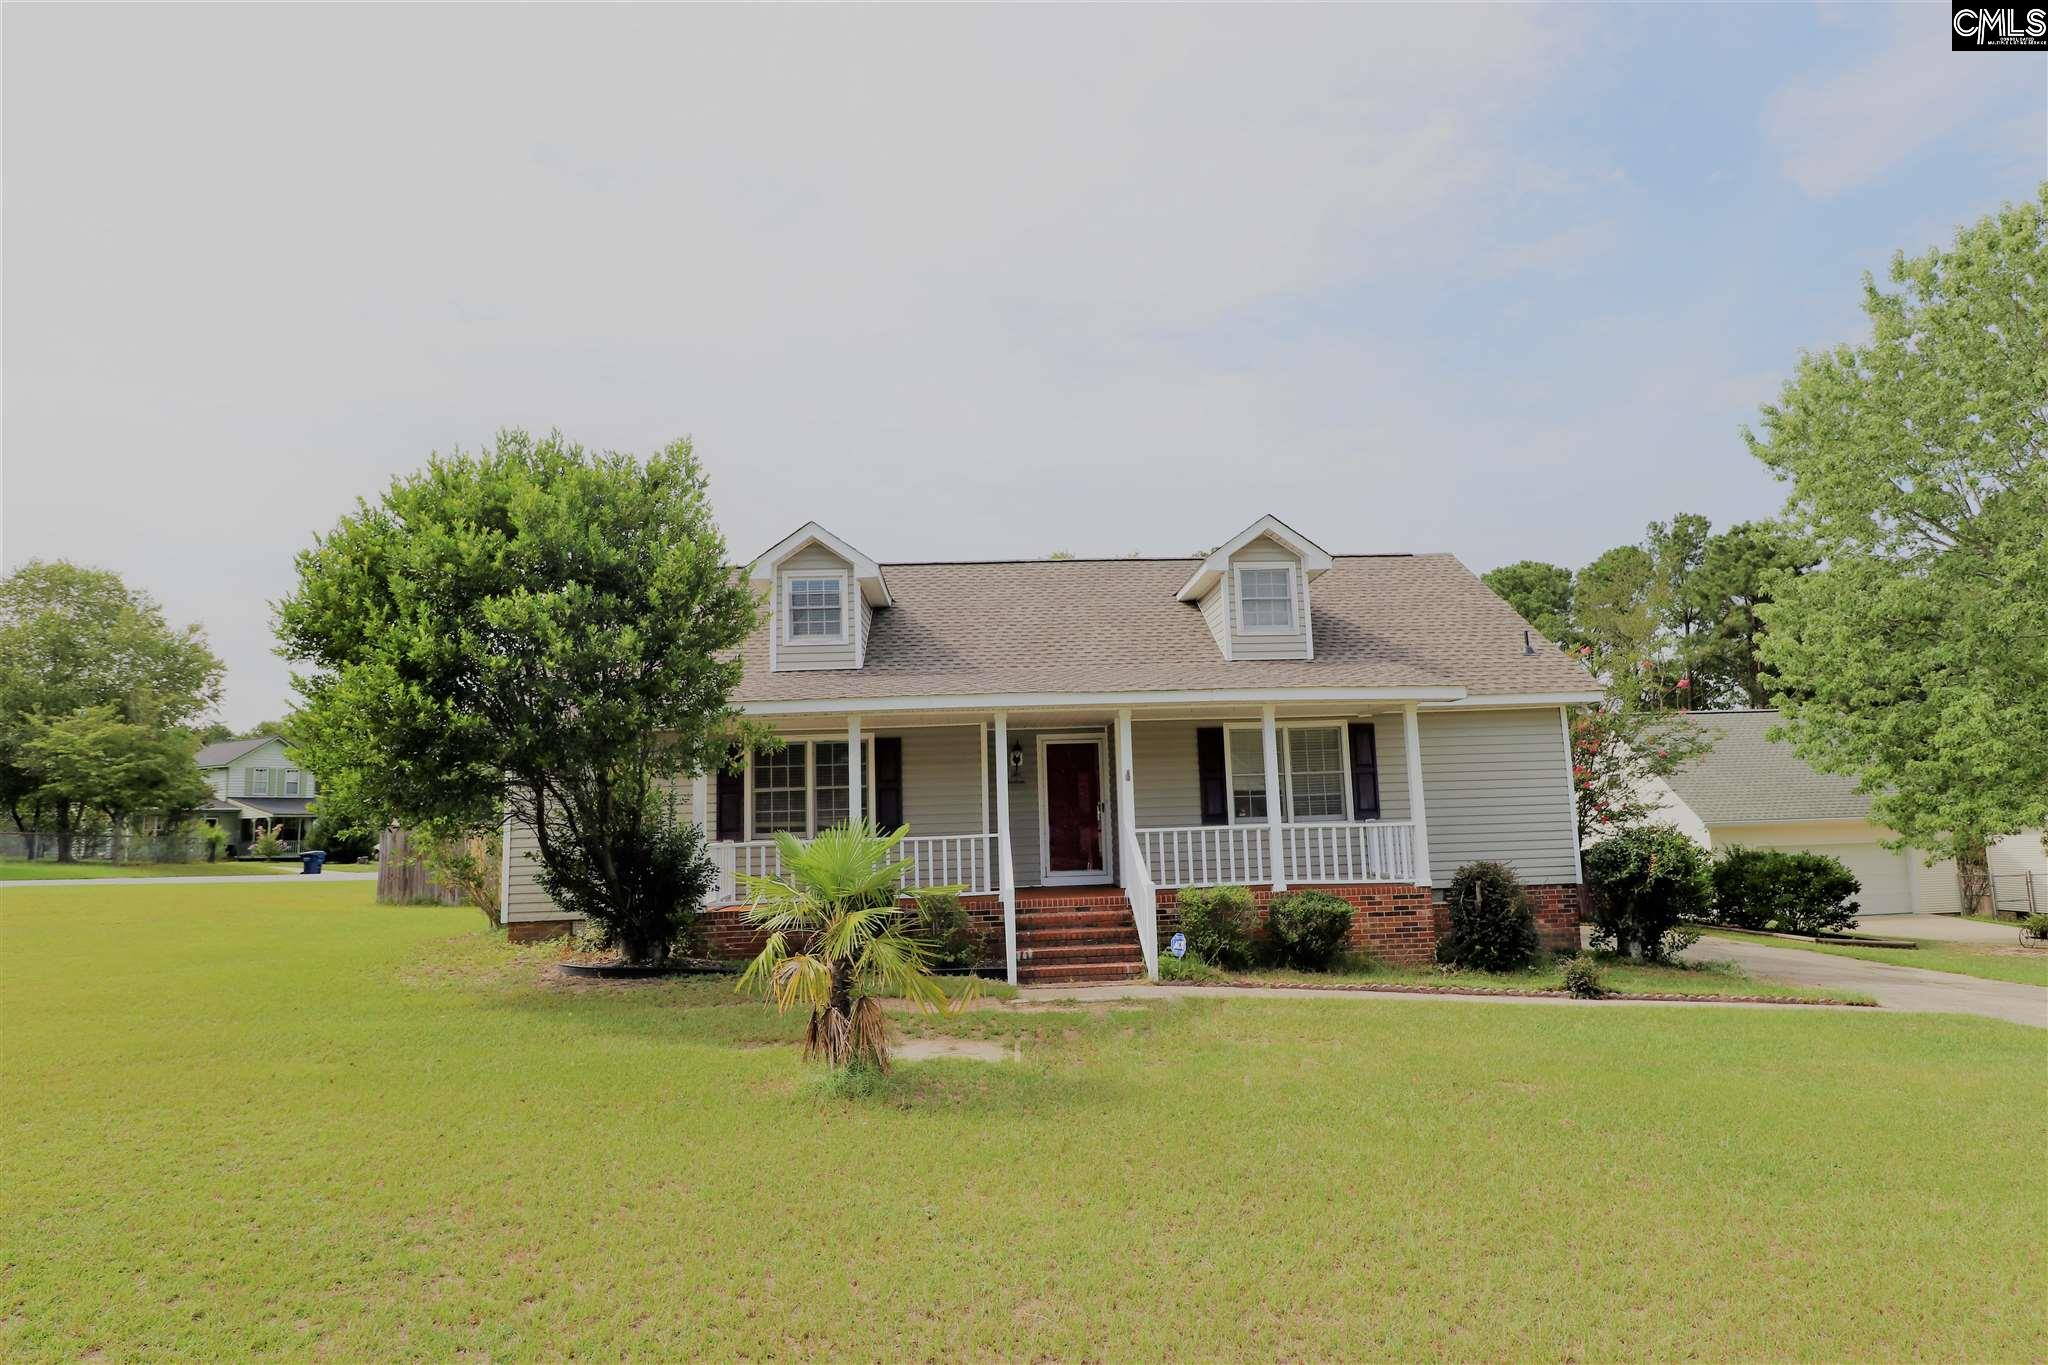 213 Coachman Lexington, SC 29072